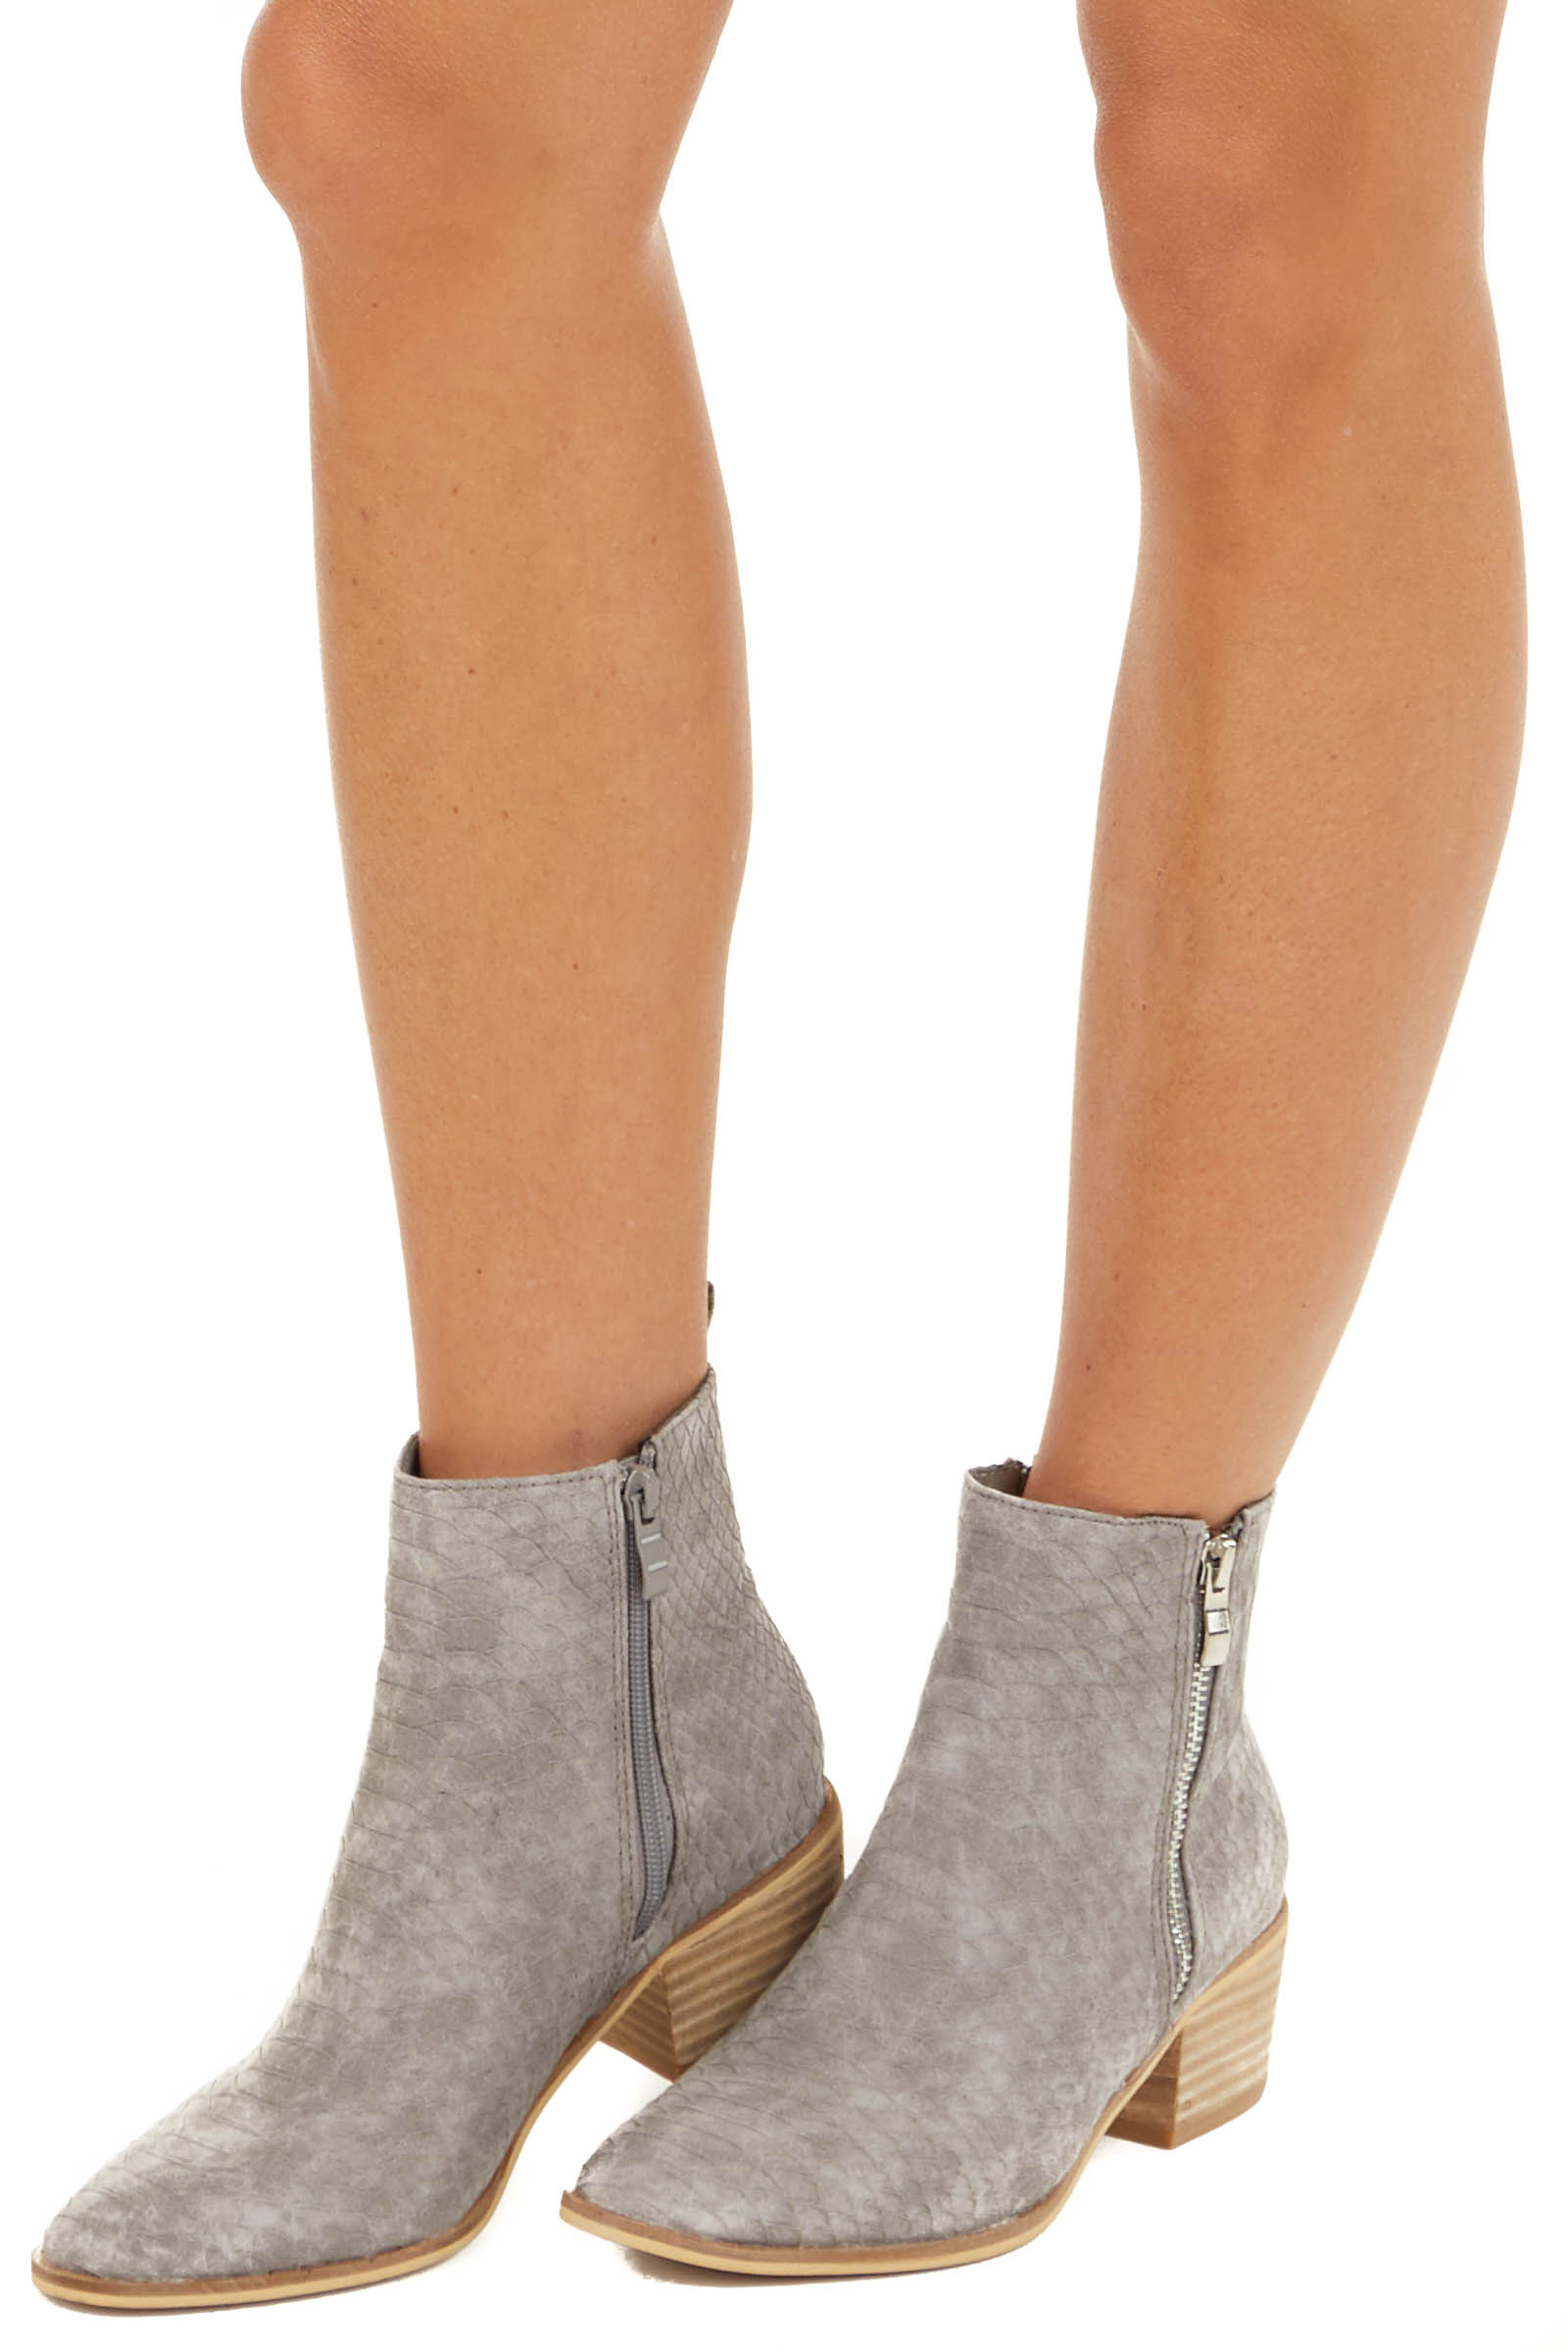 Stone Grey Textured Reptile Print Booties side view